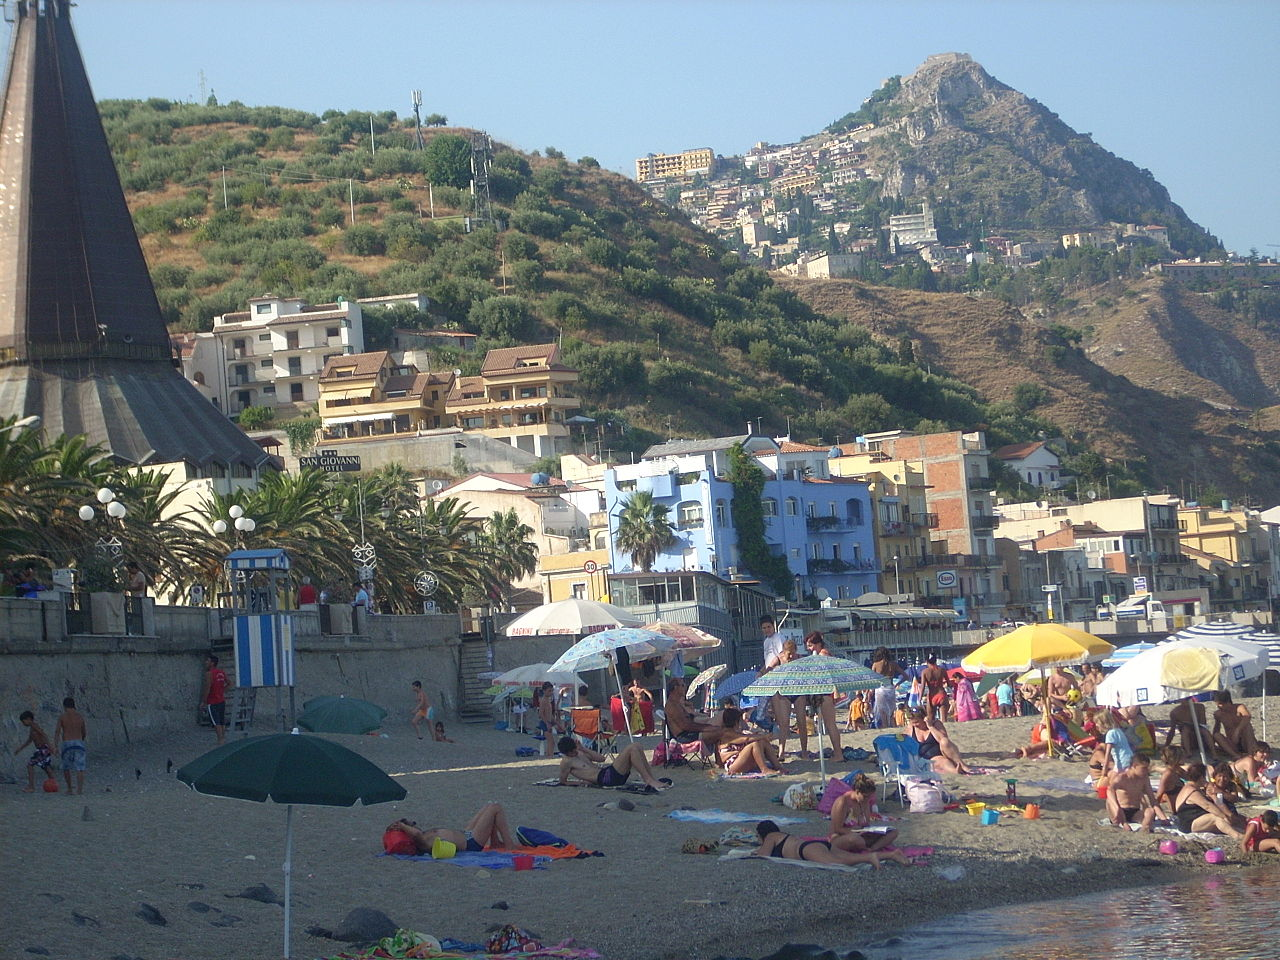 Giardini Naxos Italy  City new picture : Original file ‎ 2,560 × 1,920 pixels, file size: 1.24 MB, MIME ...